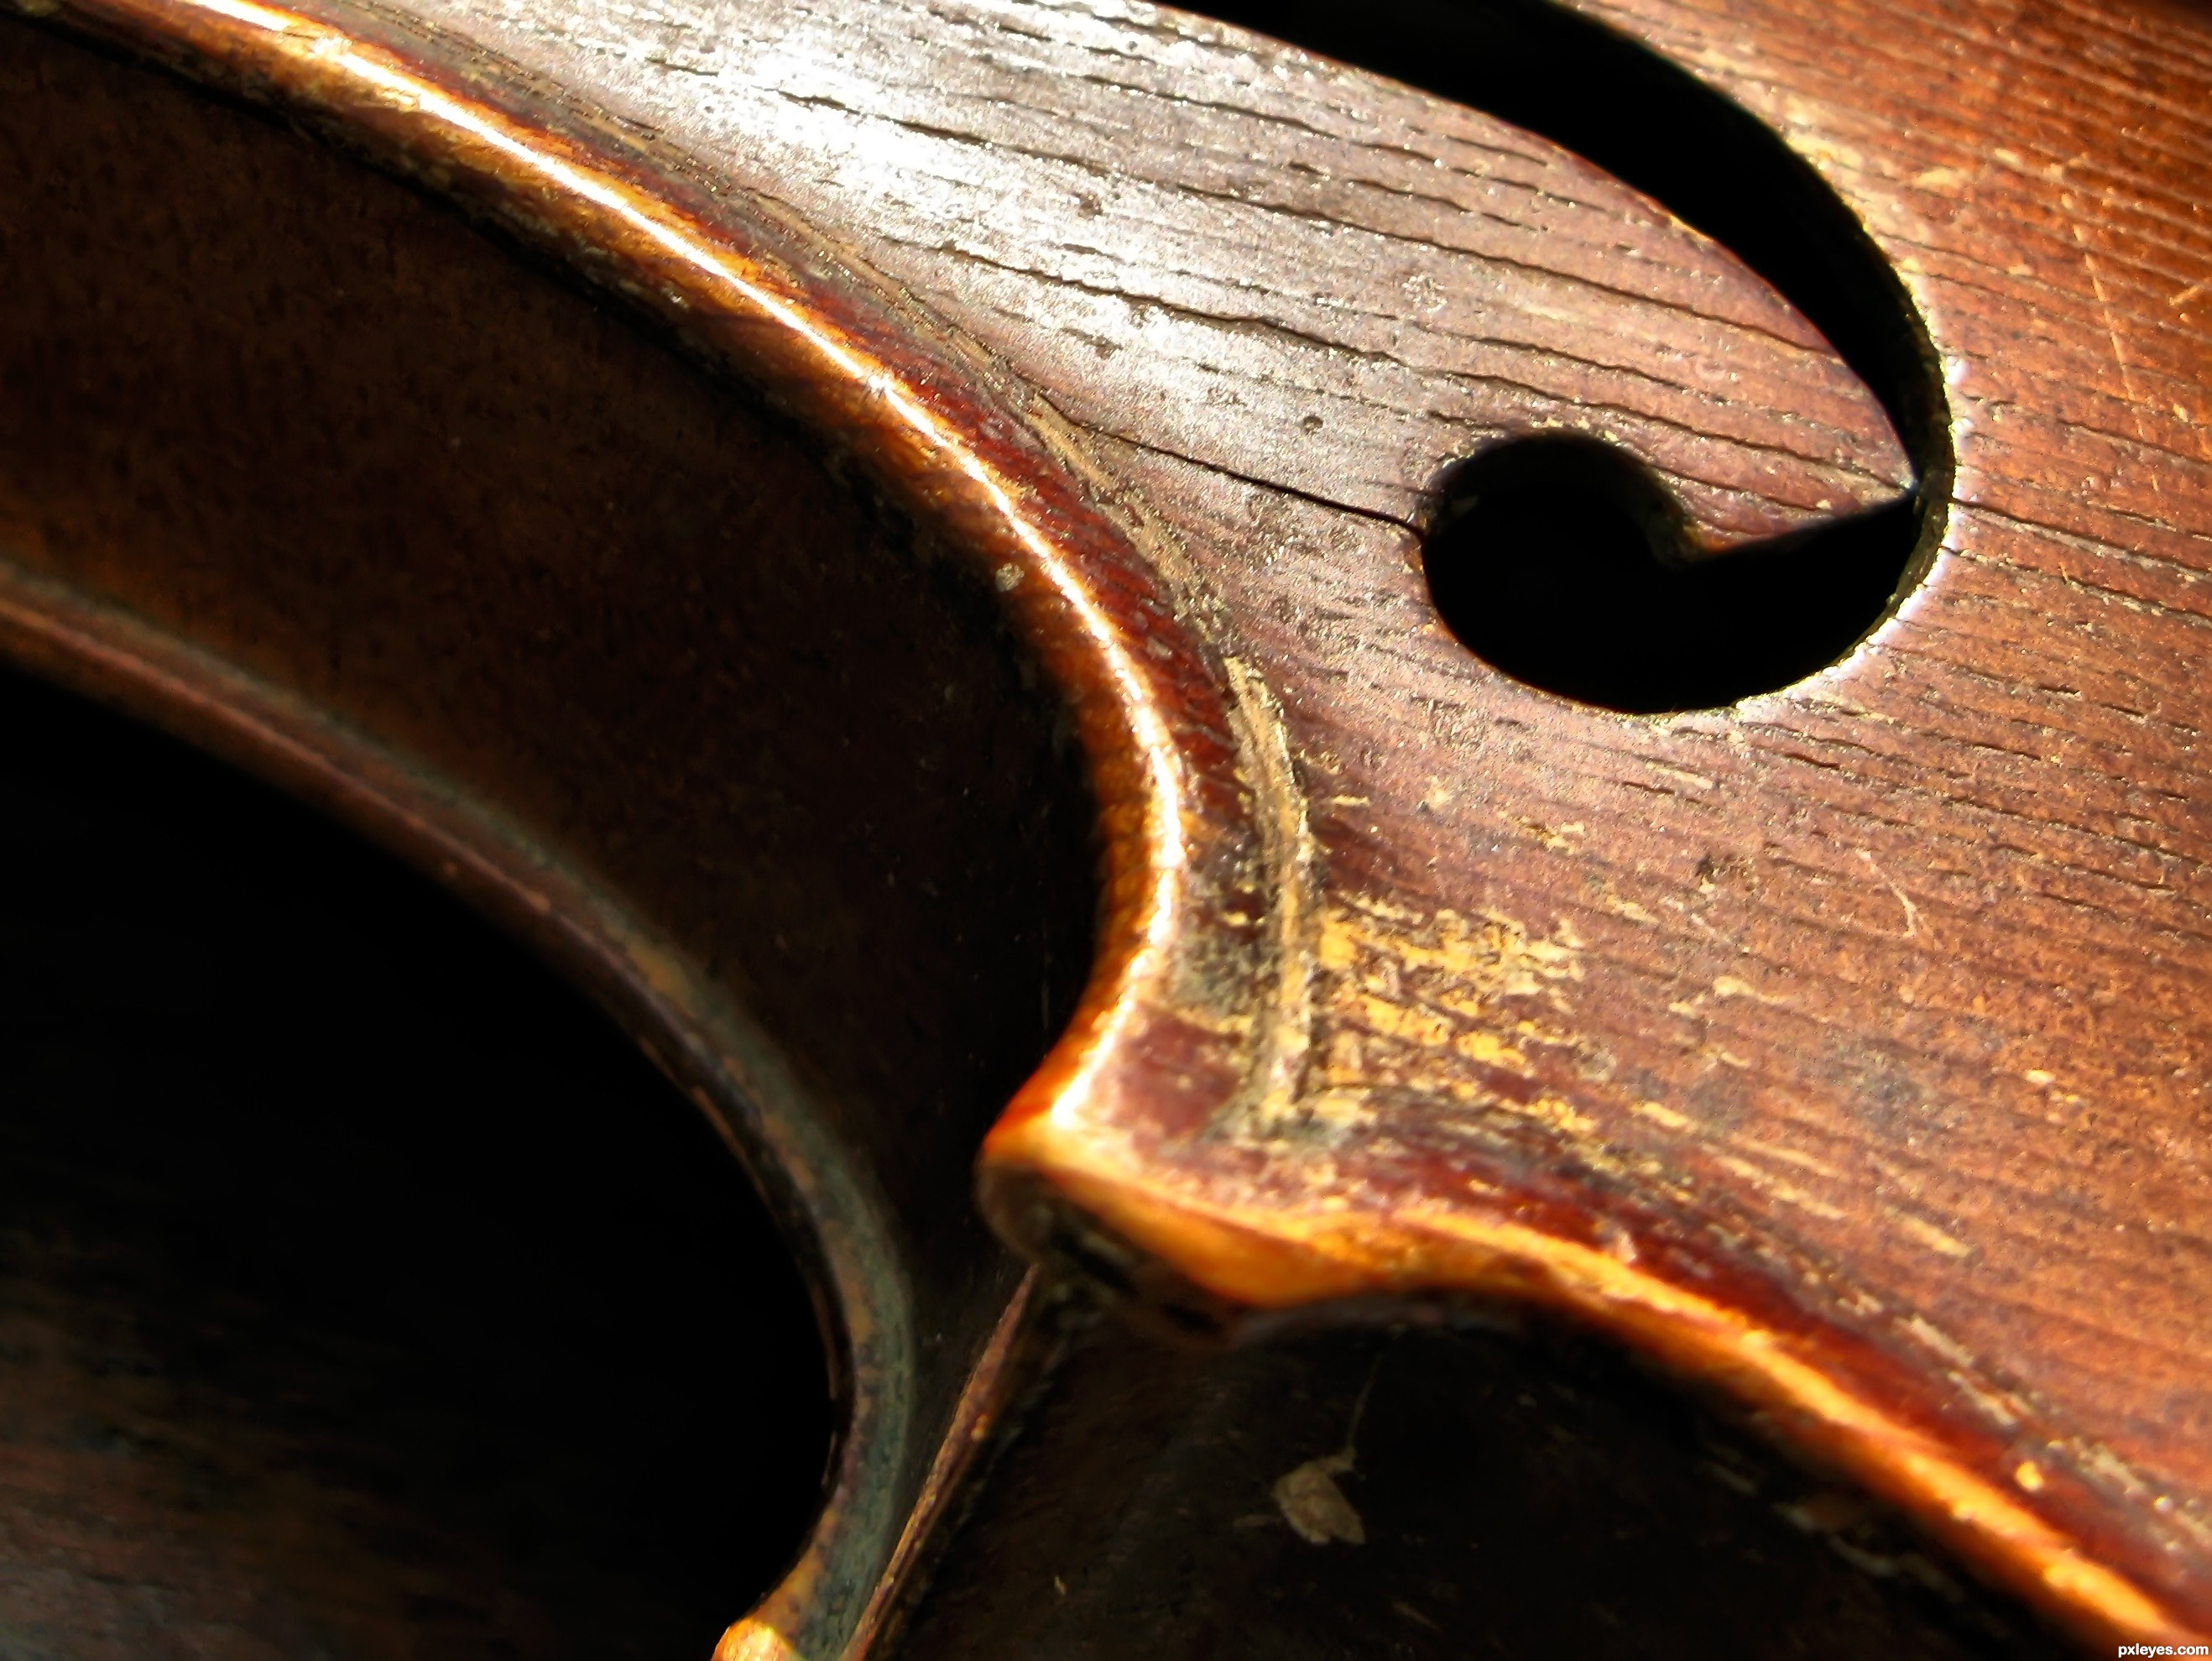 Black Wood Grain Wallpaper Violin Photography Contest Pictures Image Page 1